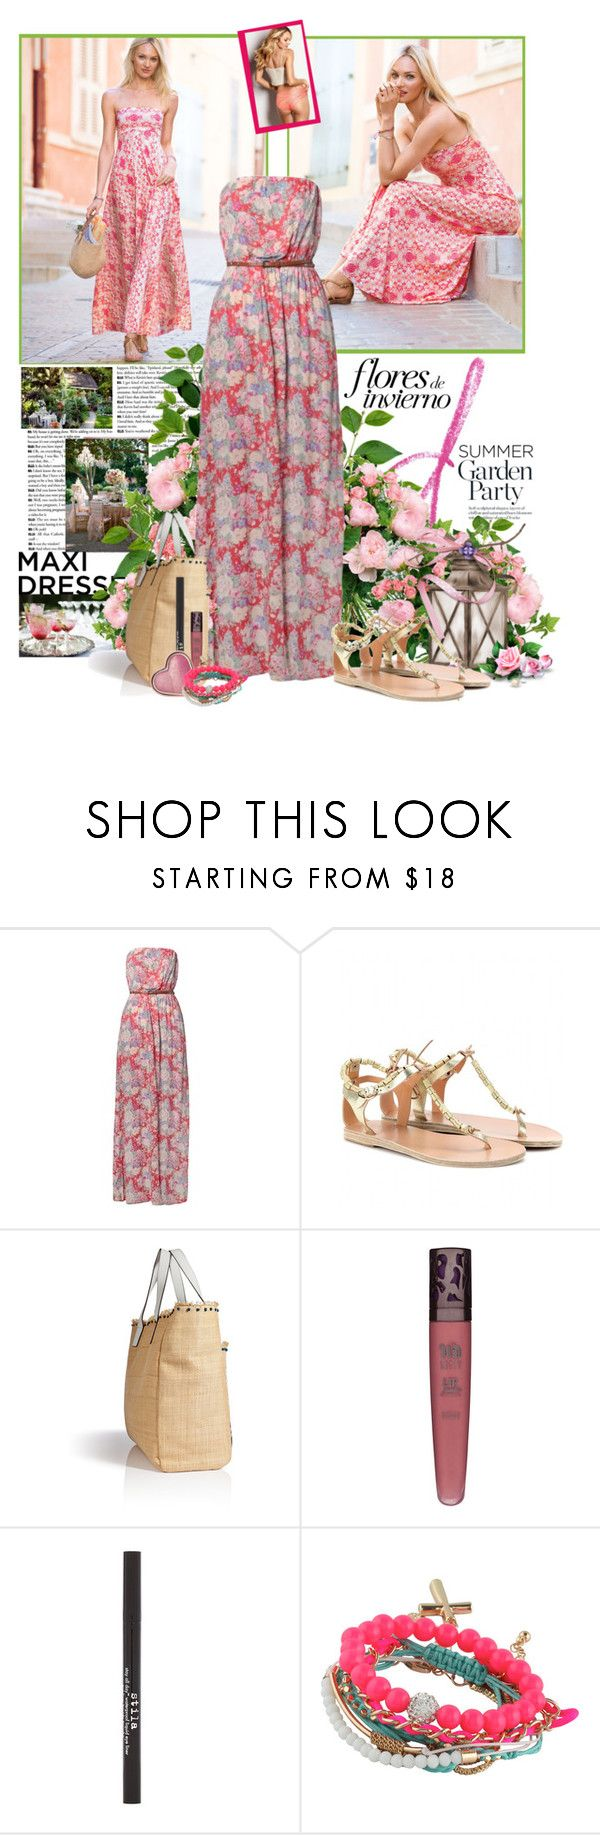 """""""Garden Party"""" by summersunshinesk7 ❤ liked on Polyvore featuring New Look, Ancient Greek Sandals, Anya Hindmarch, Urban Decay, Stila, Too Faced Cosmetics and ALDO"""